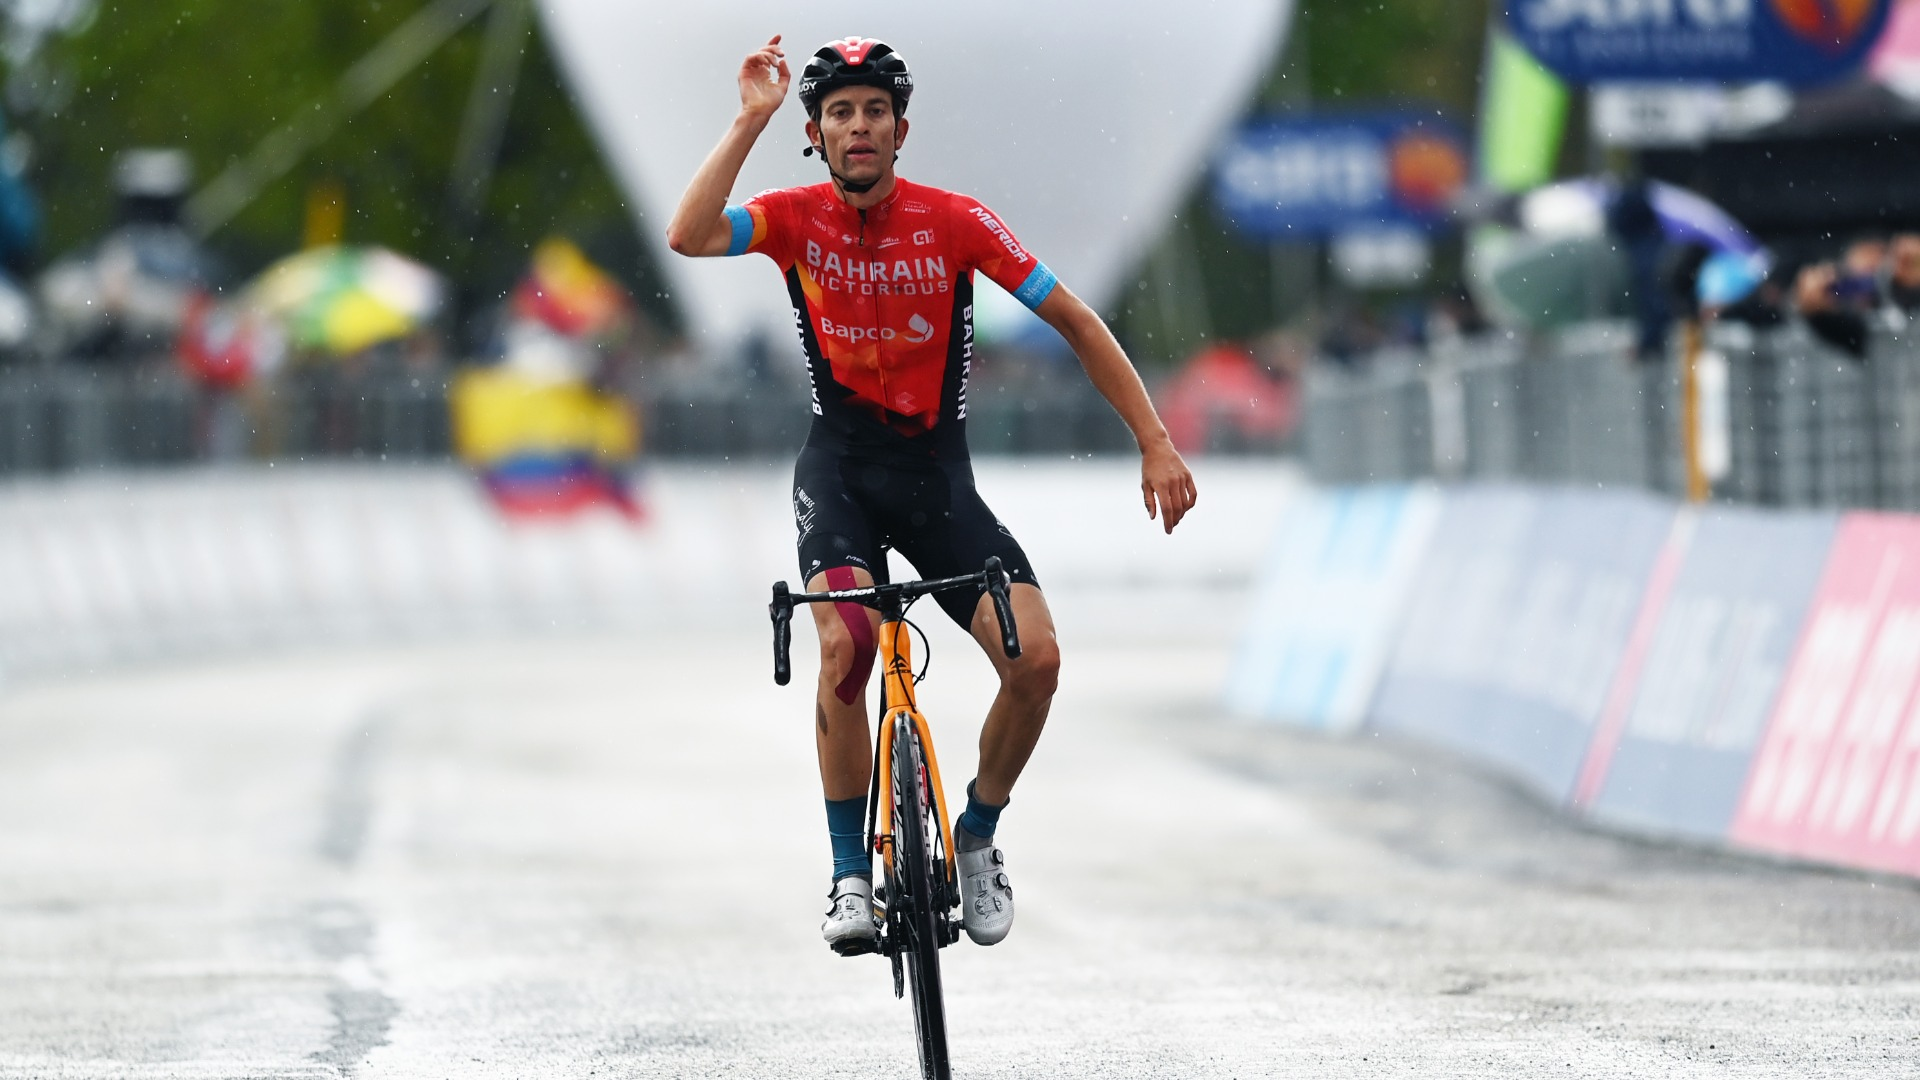 Giro d'Italia: Mader climbs to stage six win, Valter takes maglia rosa